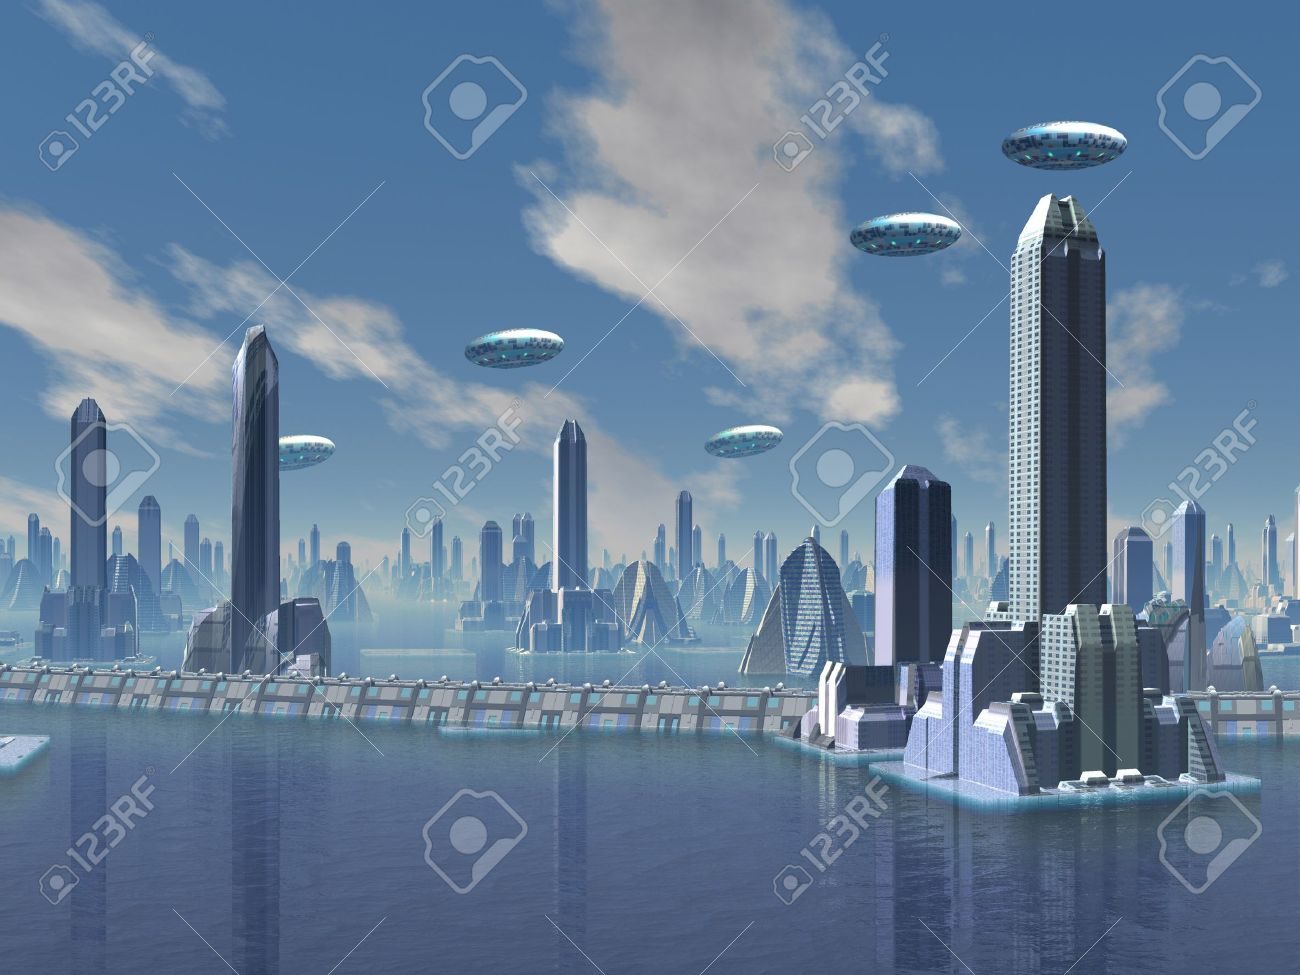 Ufo Over Futuristic Alien City Stock Photo Picture And Royalty